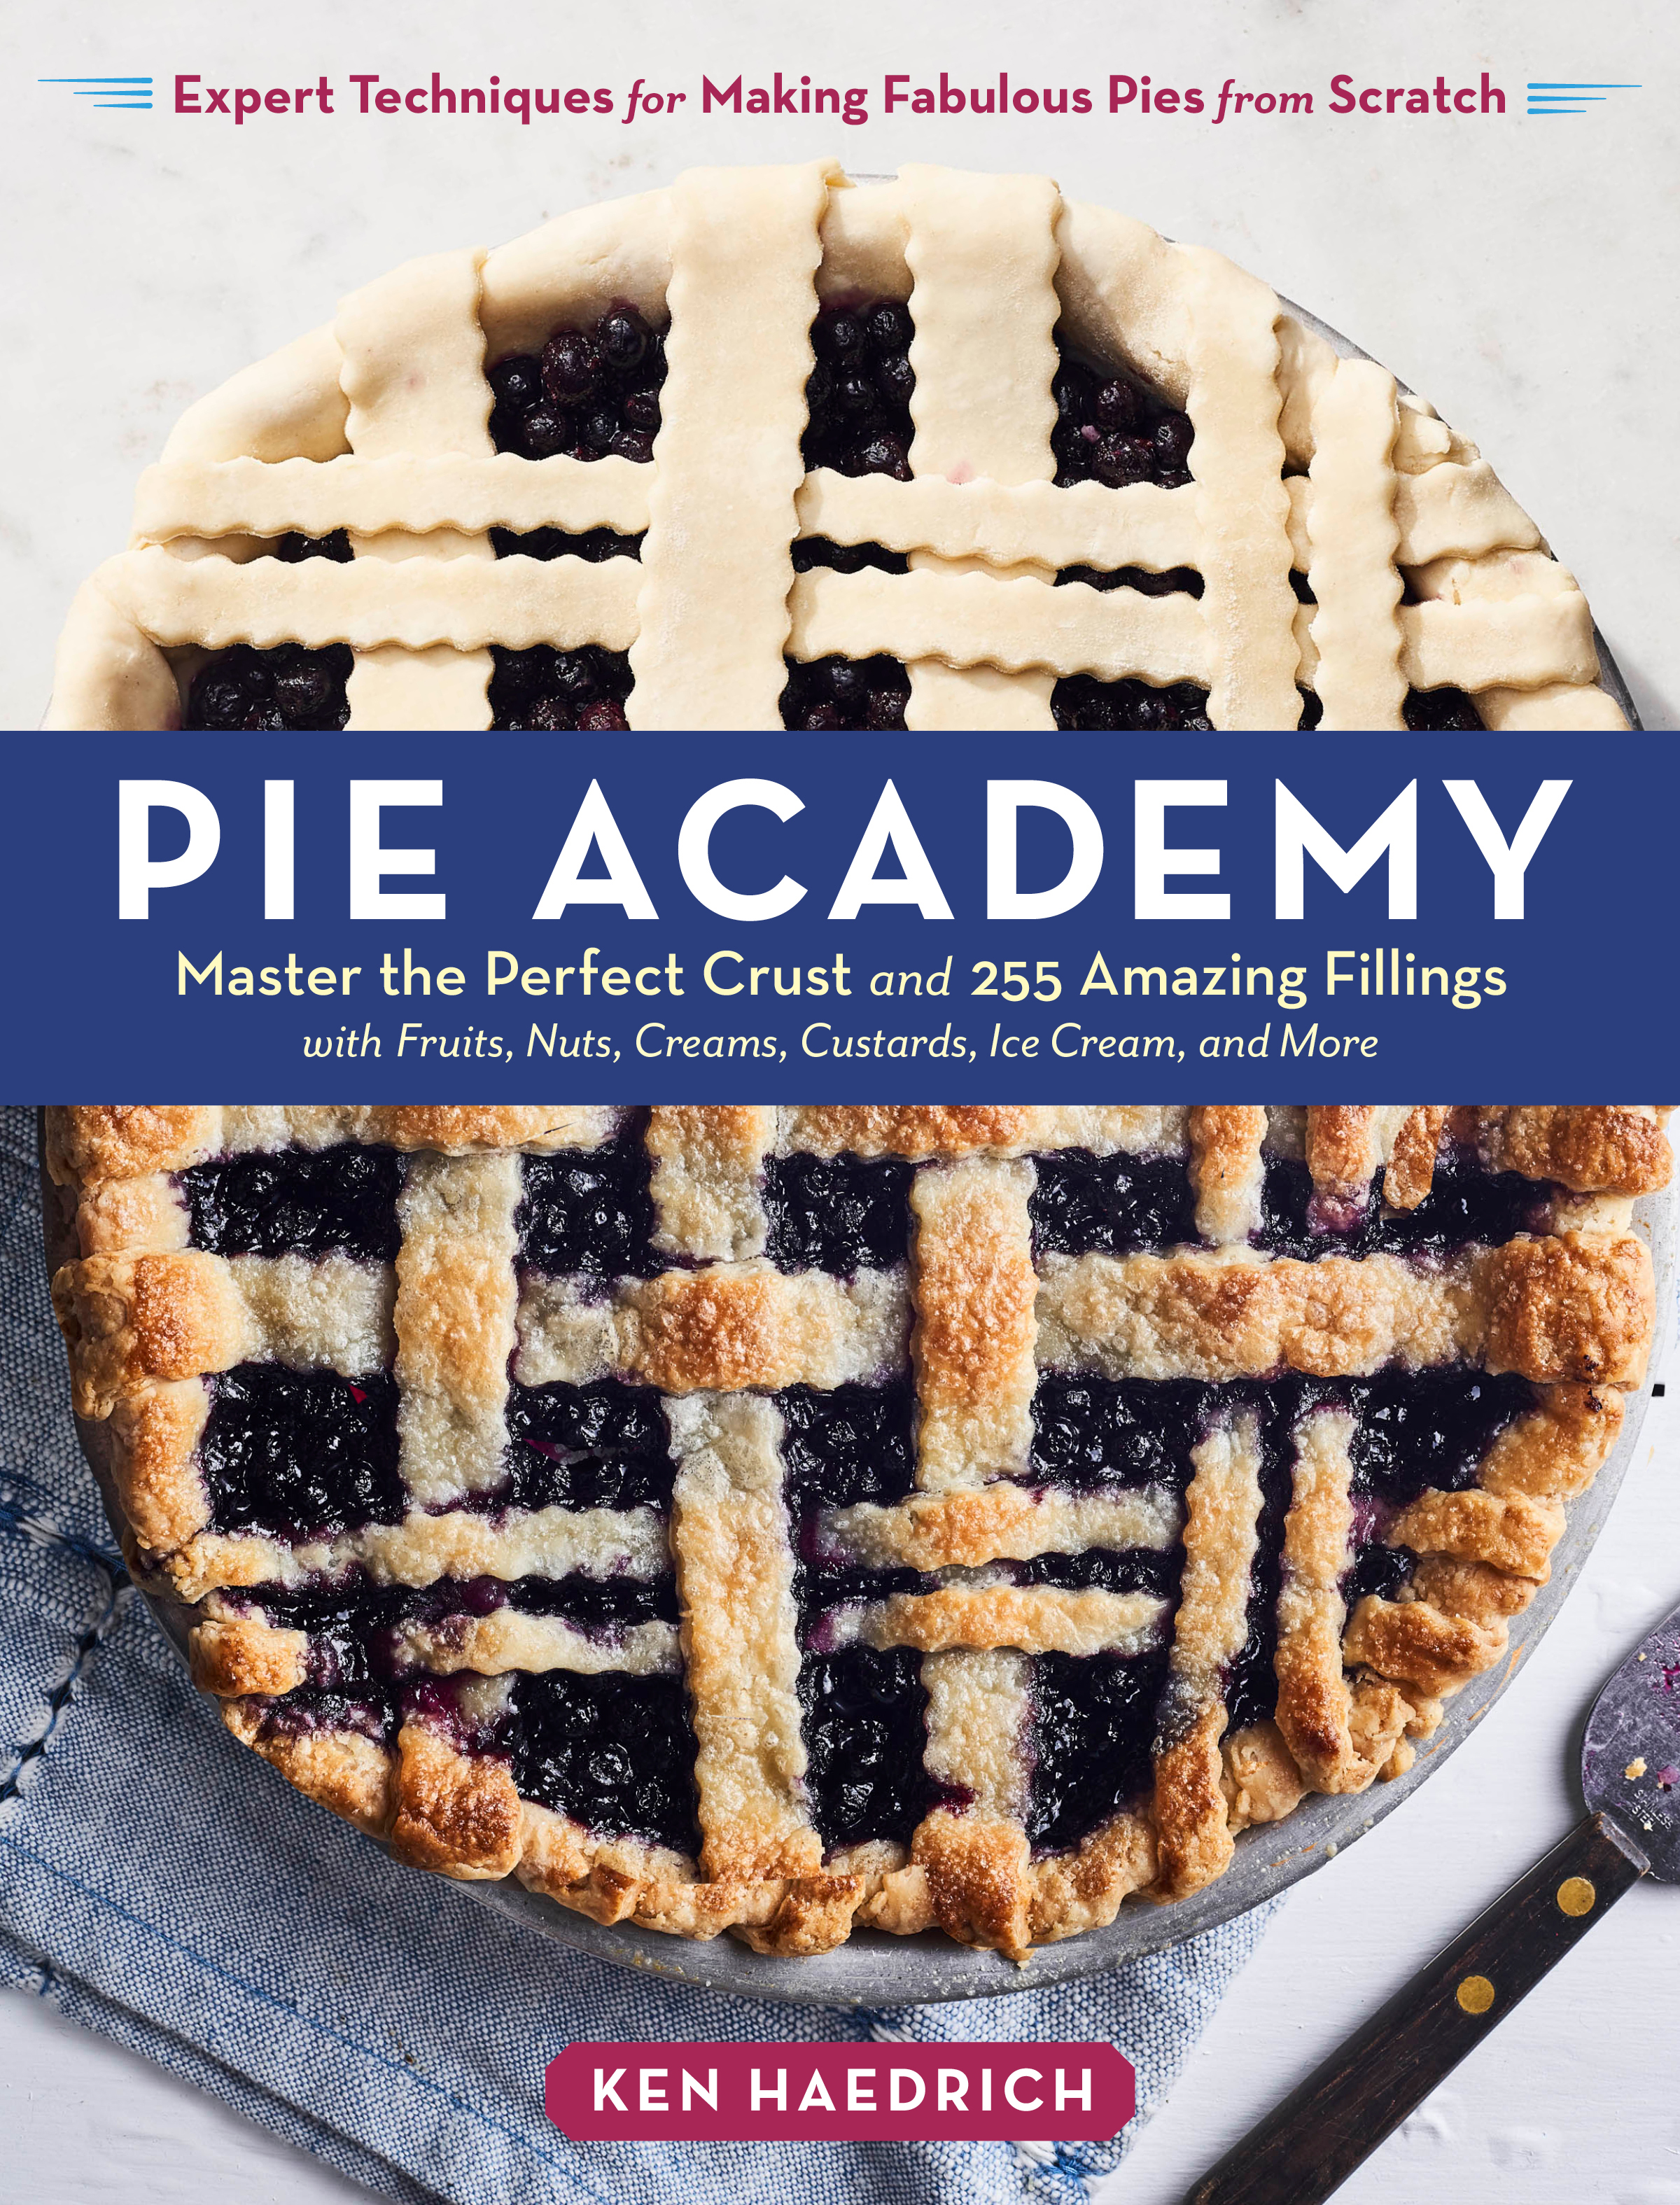 Pie Academy Master the Perfect Crust and 255 Amazing Fillings, with Fruits, Nuts, Creams, Custards, Ice Cream, and More; Expert Techniques for Making Fabulous Pies from Scratch - Ken Haedrich